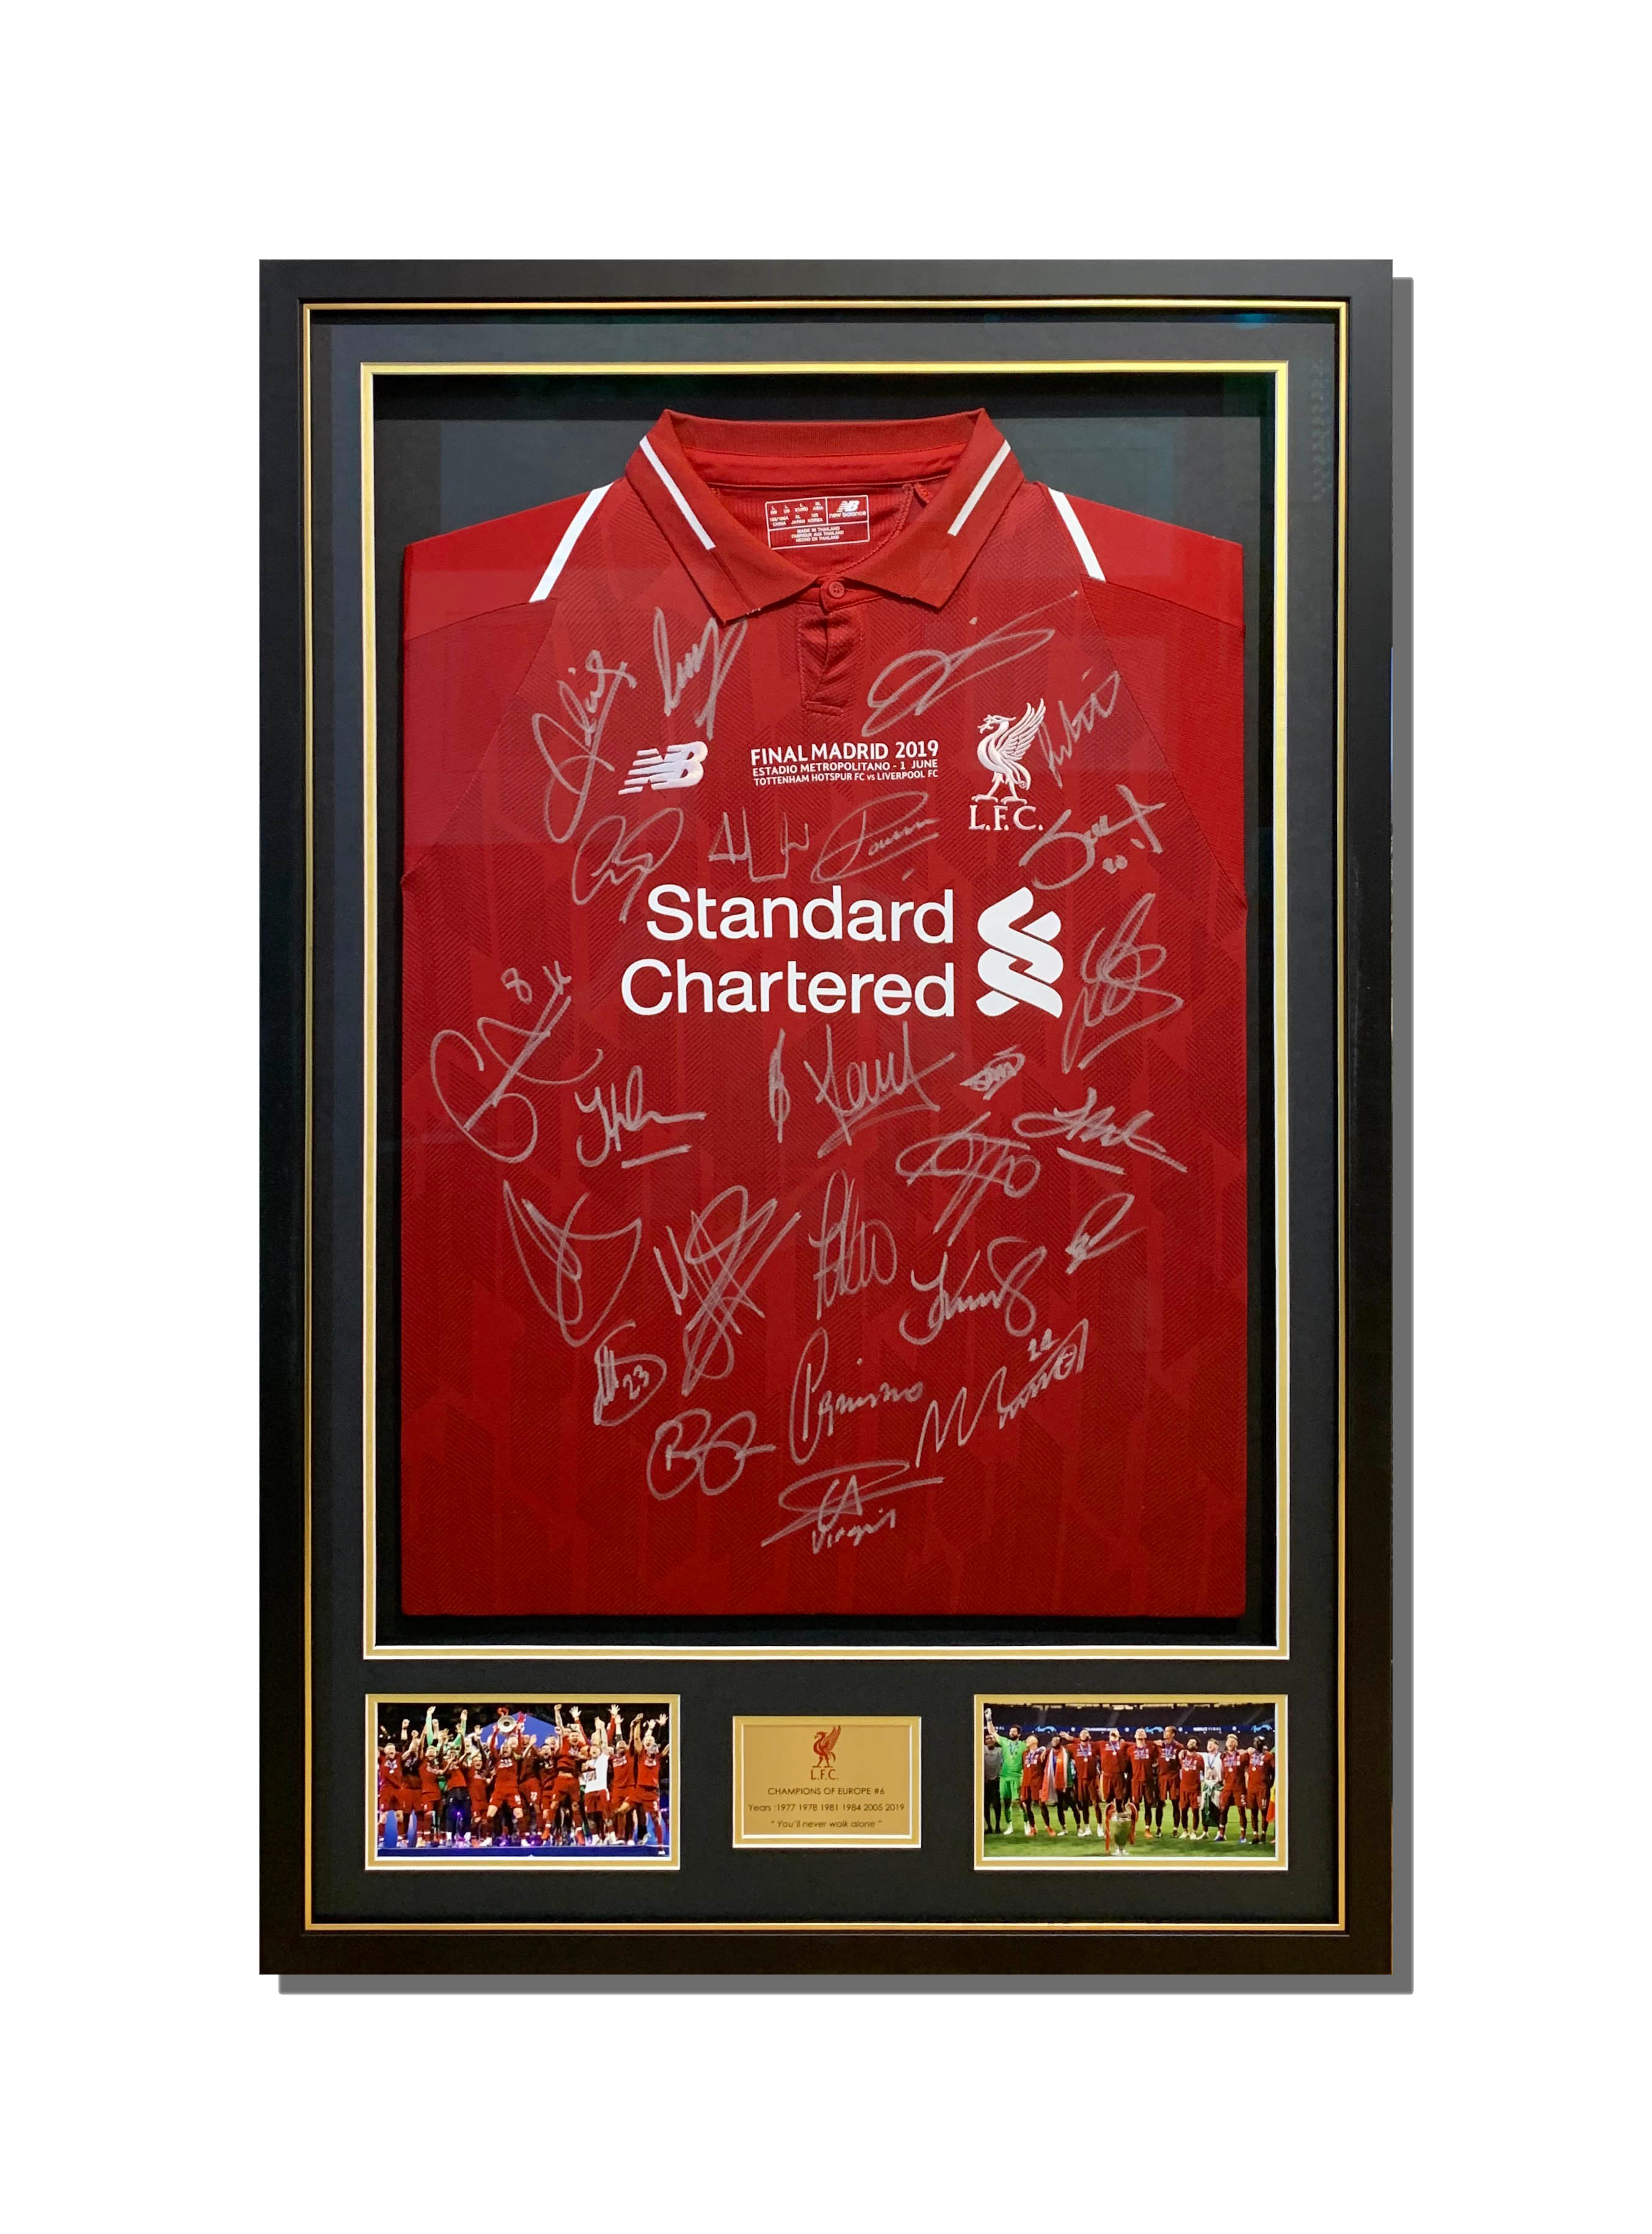 Liverpool Signed Jersey Shadow Box Framing Black Matboard Multiple Window Openings Gold Trim Matte Black Frame Mounted Photos Engraved Plate